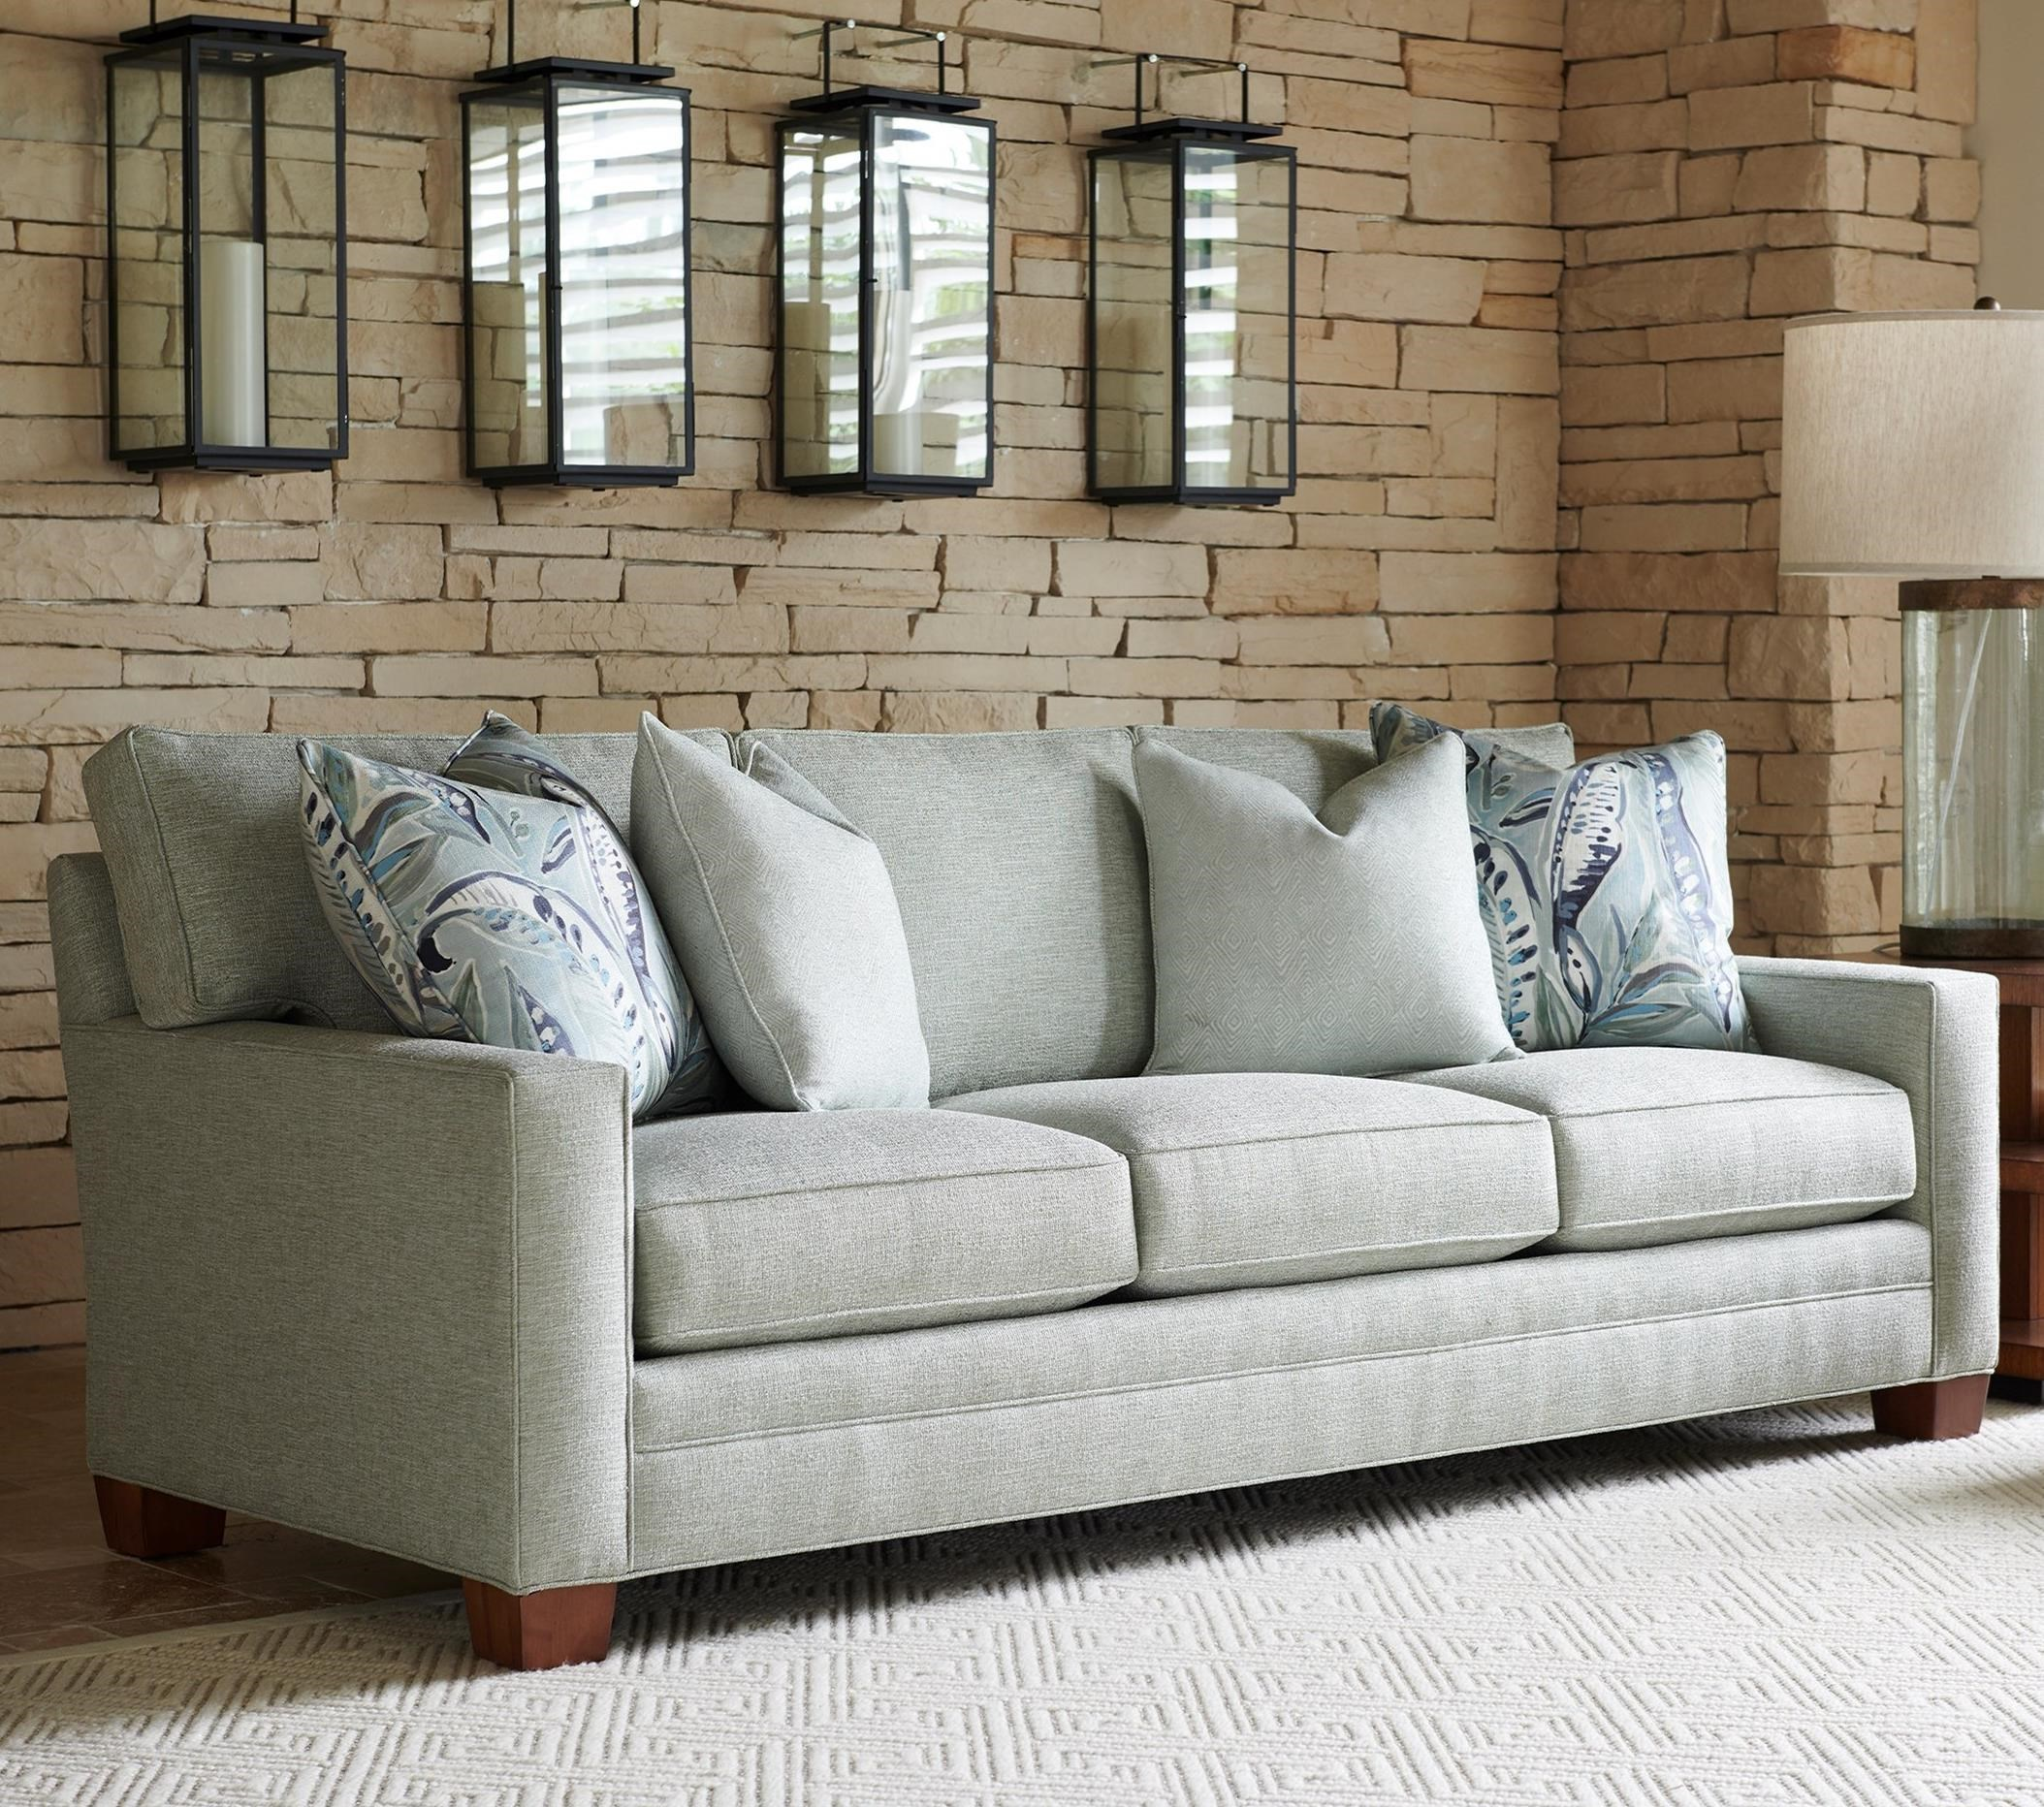 Personal Design Series Bedford Customizable 3- Cushion Sofa by Lexington at Johnny Janosik